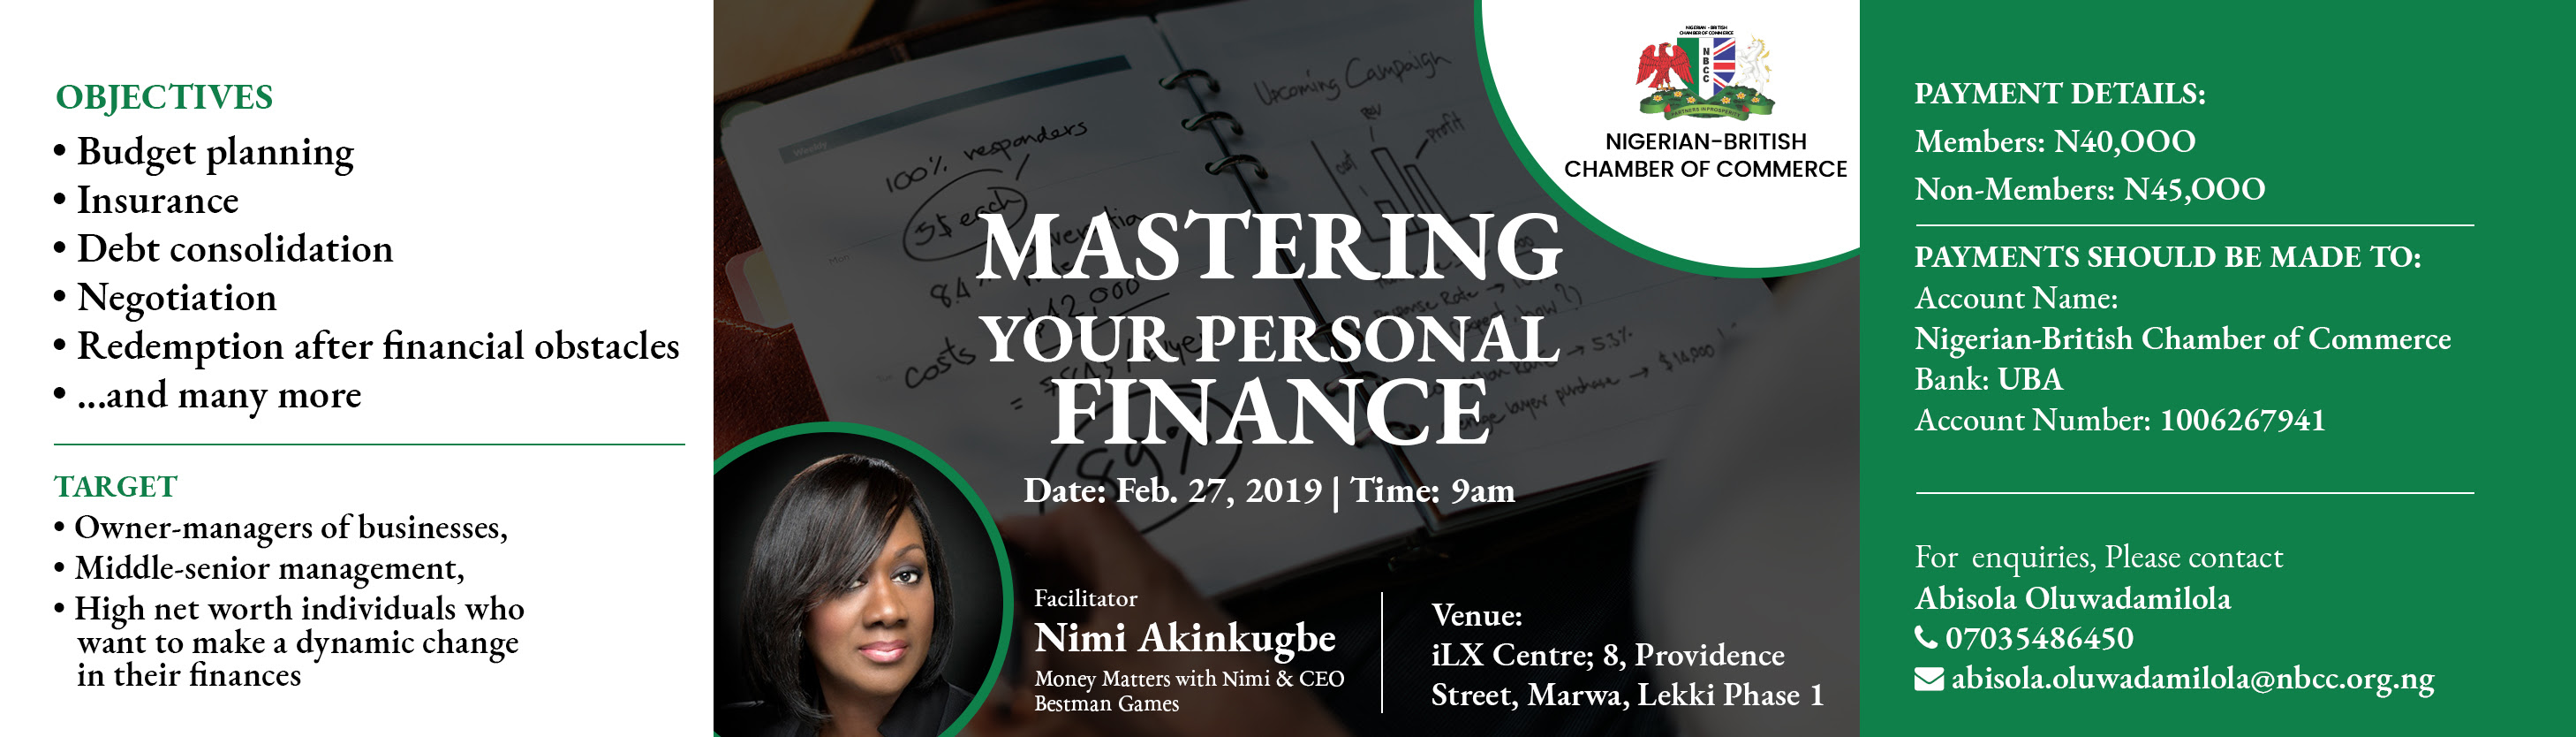 Mastering Your Personal Finance Post free event in Nigeria using tickethub.ng, buy and sell tickets to event